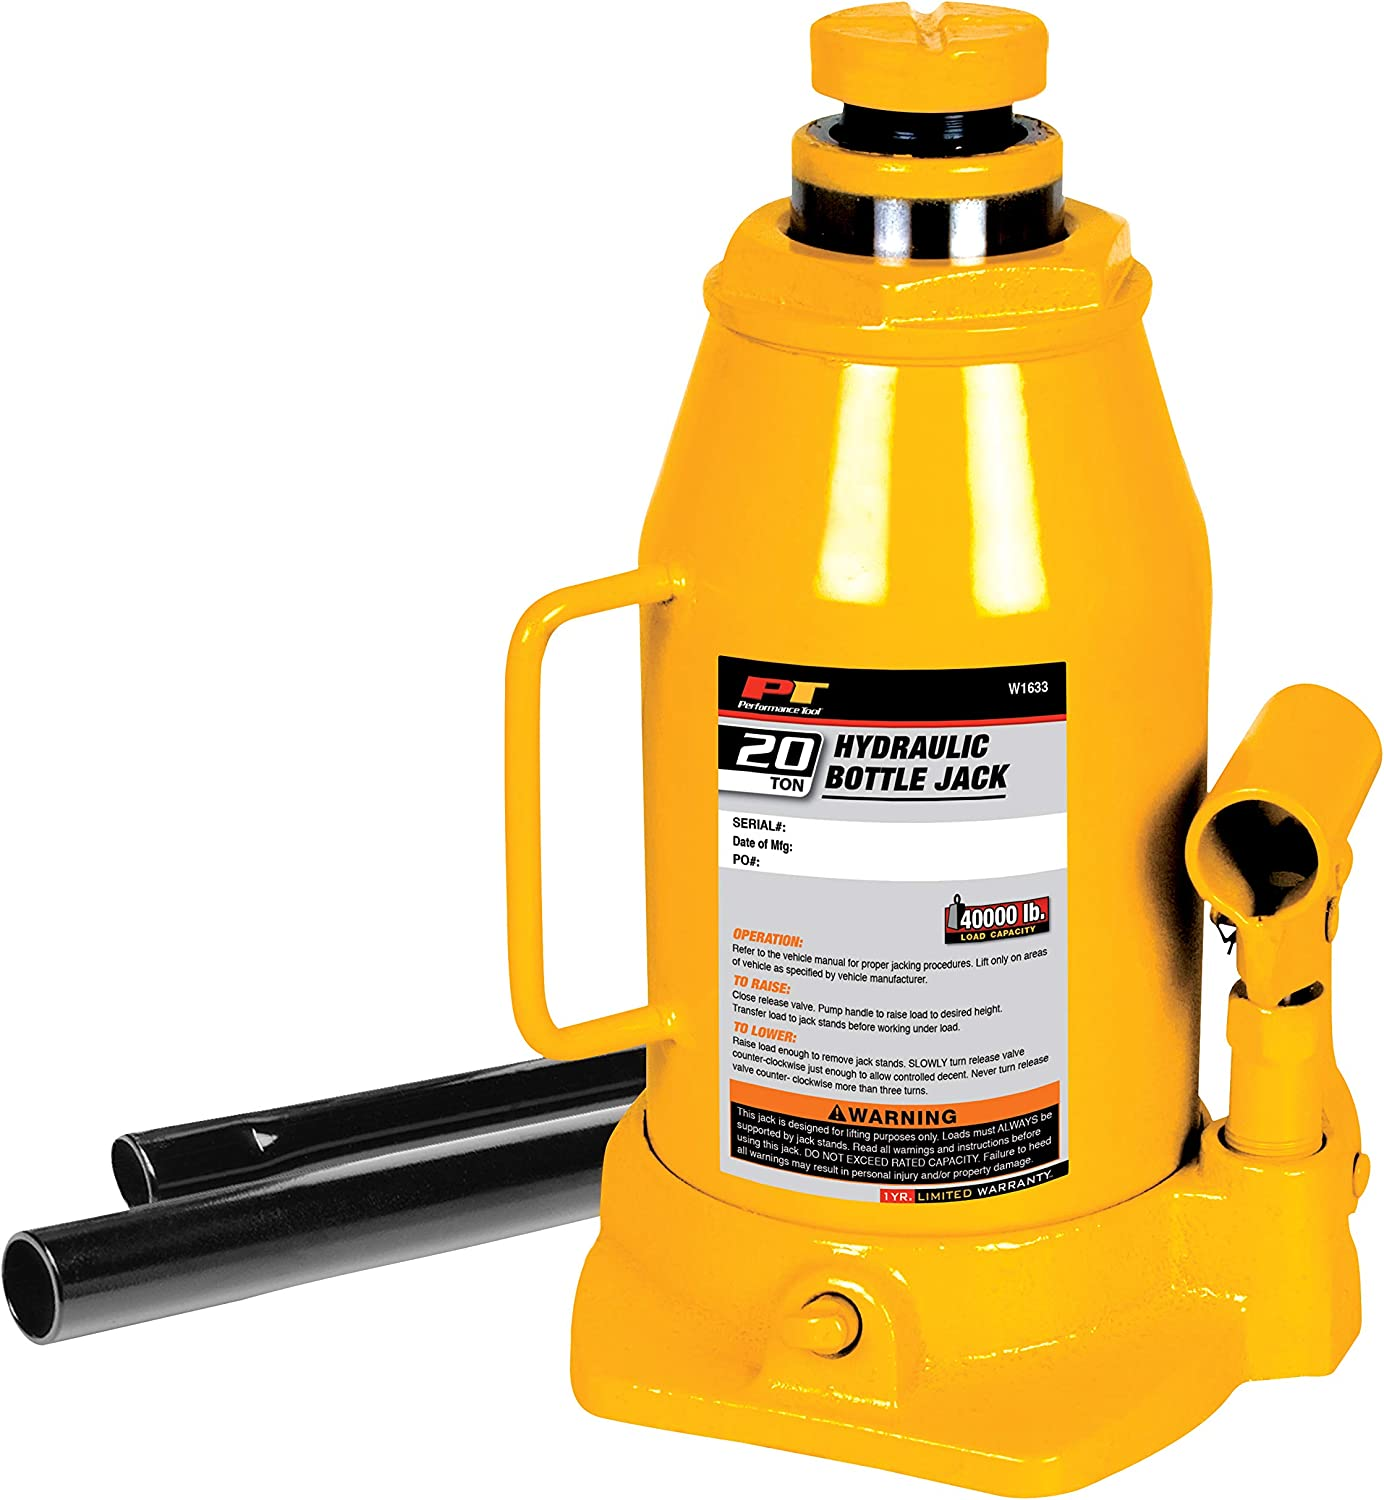 Lift Automotive Tools 20 Ton Hydraulic Bottle Jack Heavy Duty 40,000 Lbs